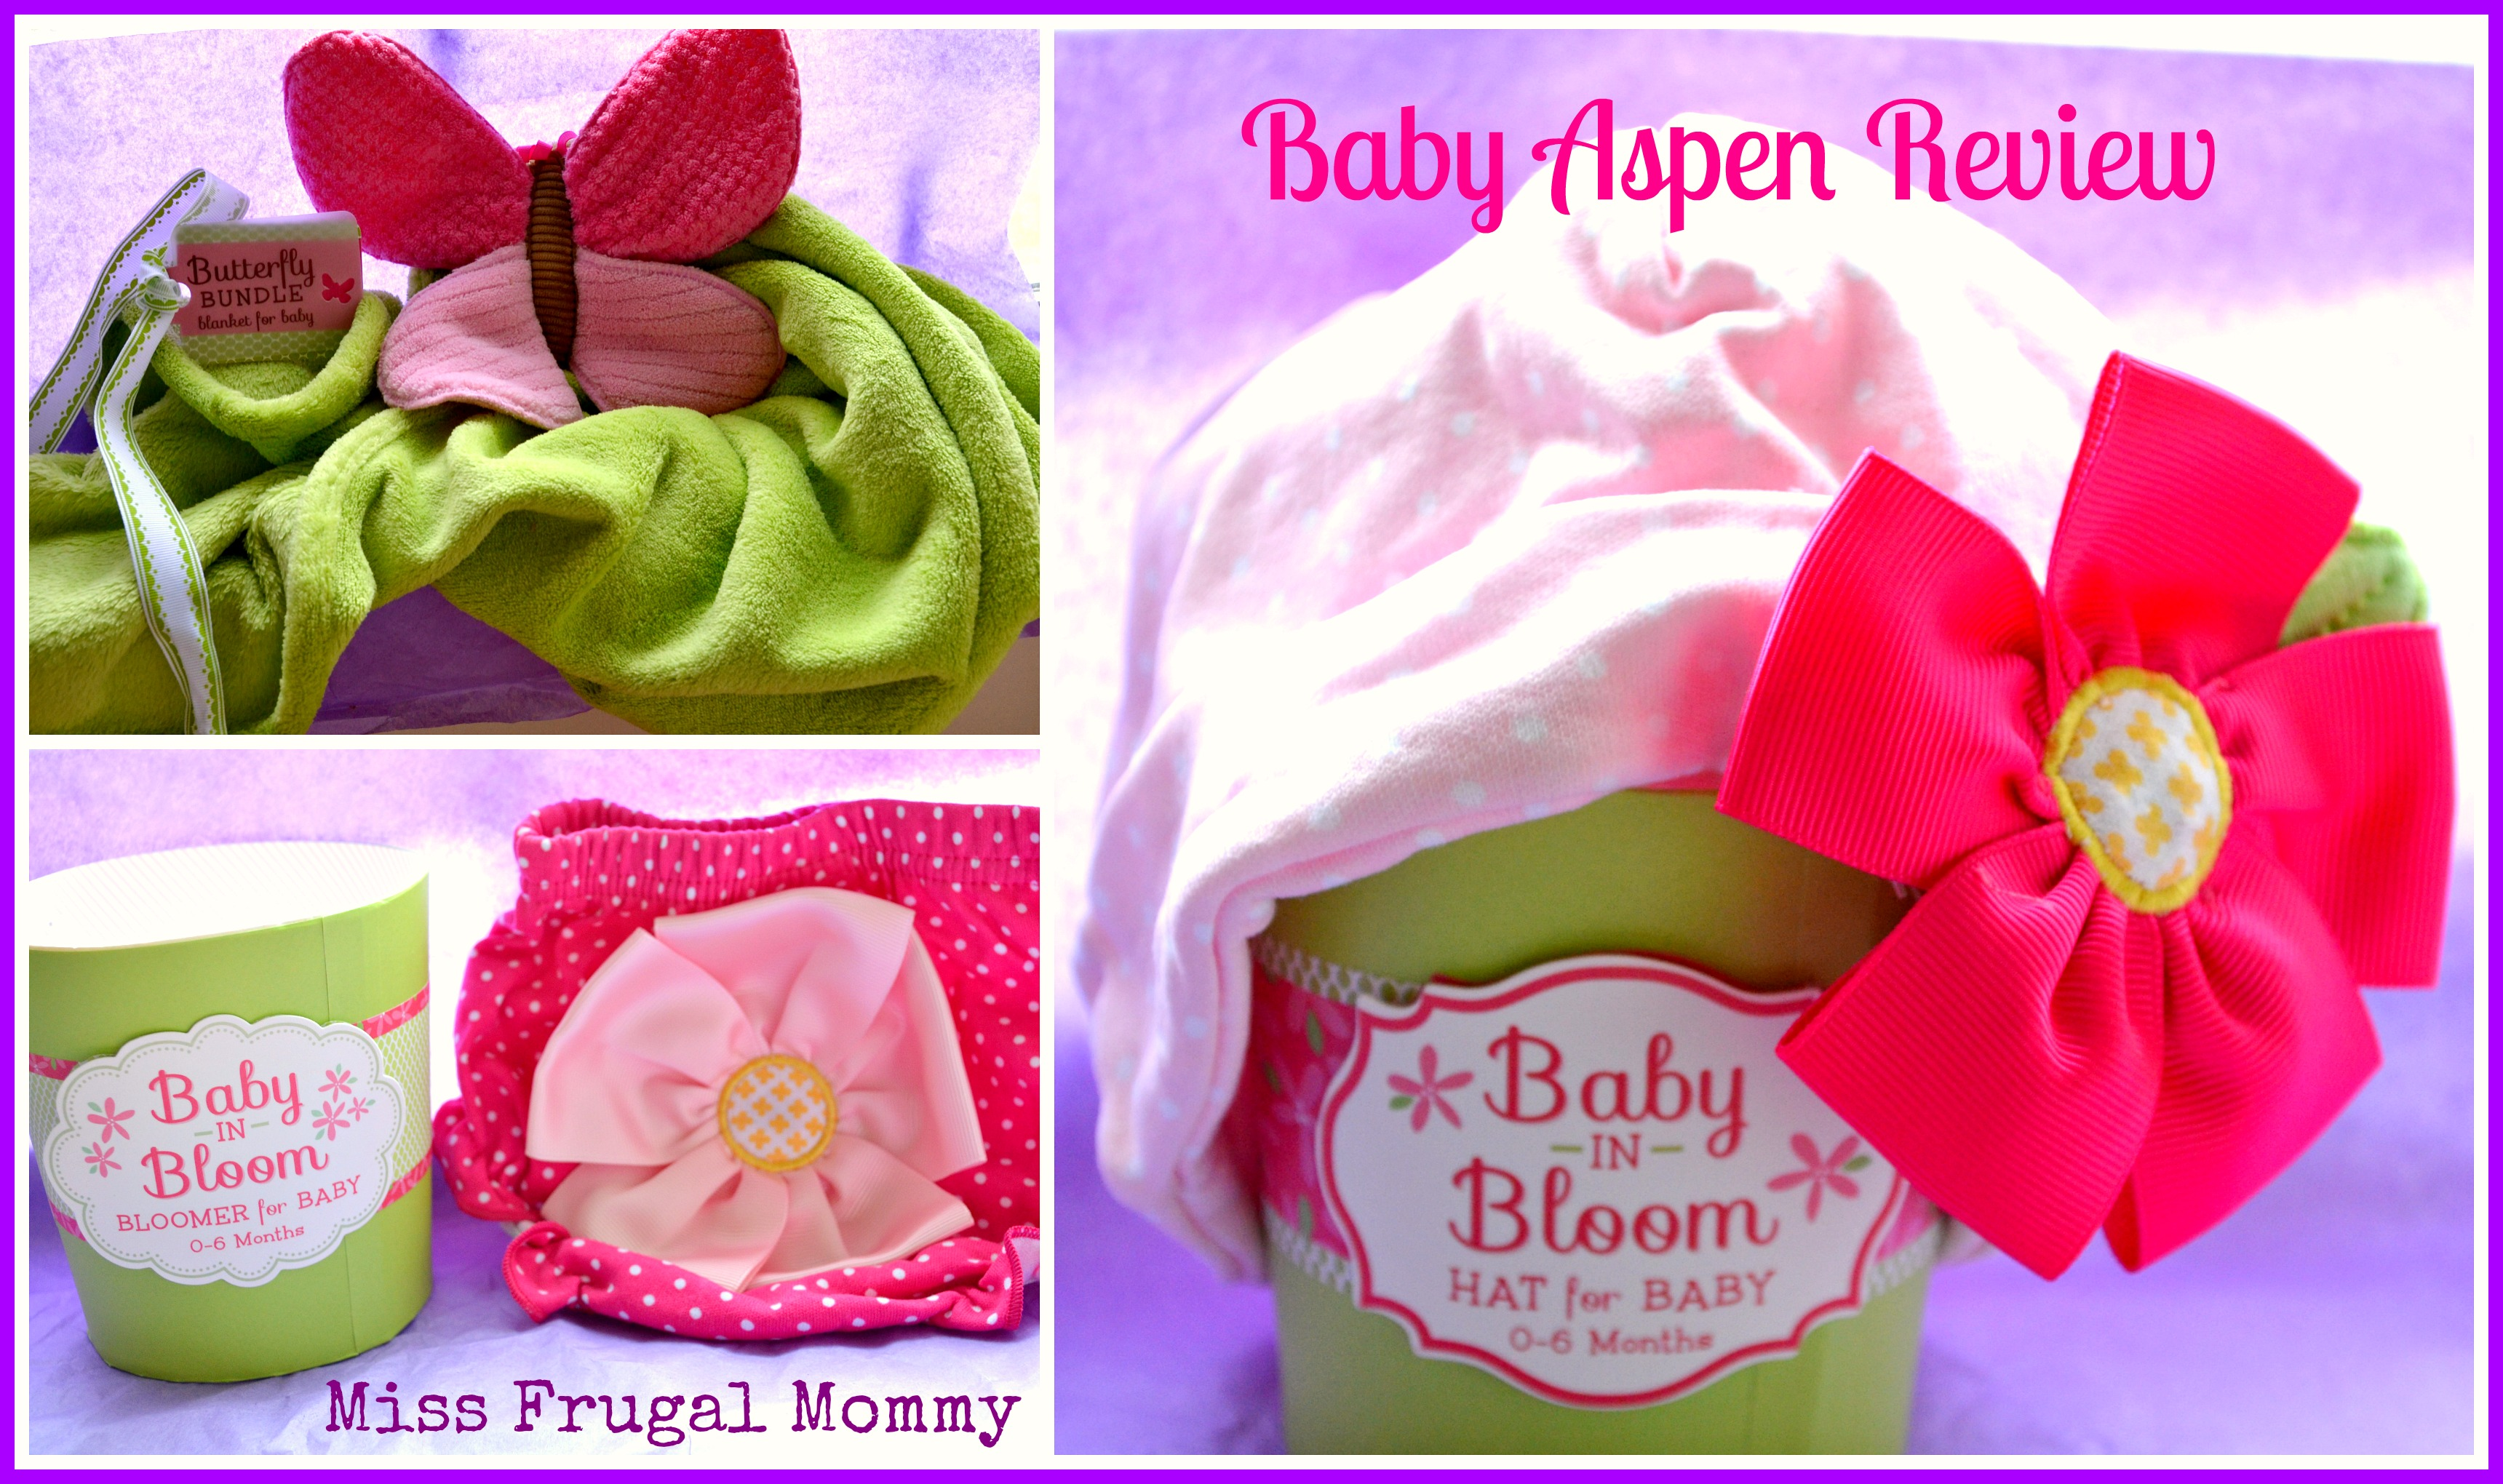 Baby Aspen Review (Getting Ready For Baby Gift Guide)